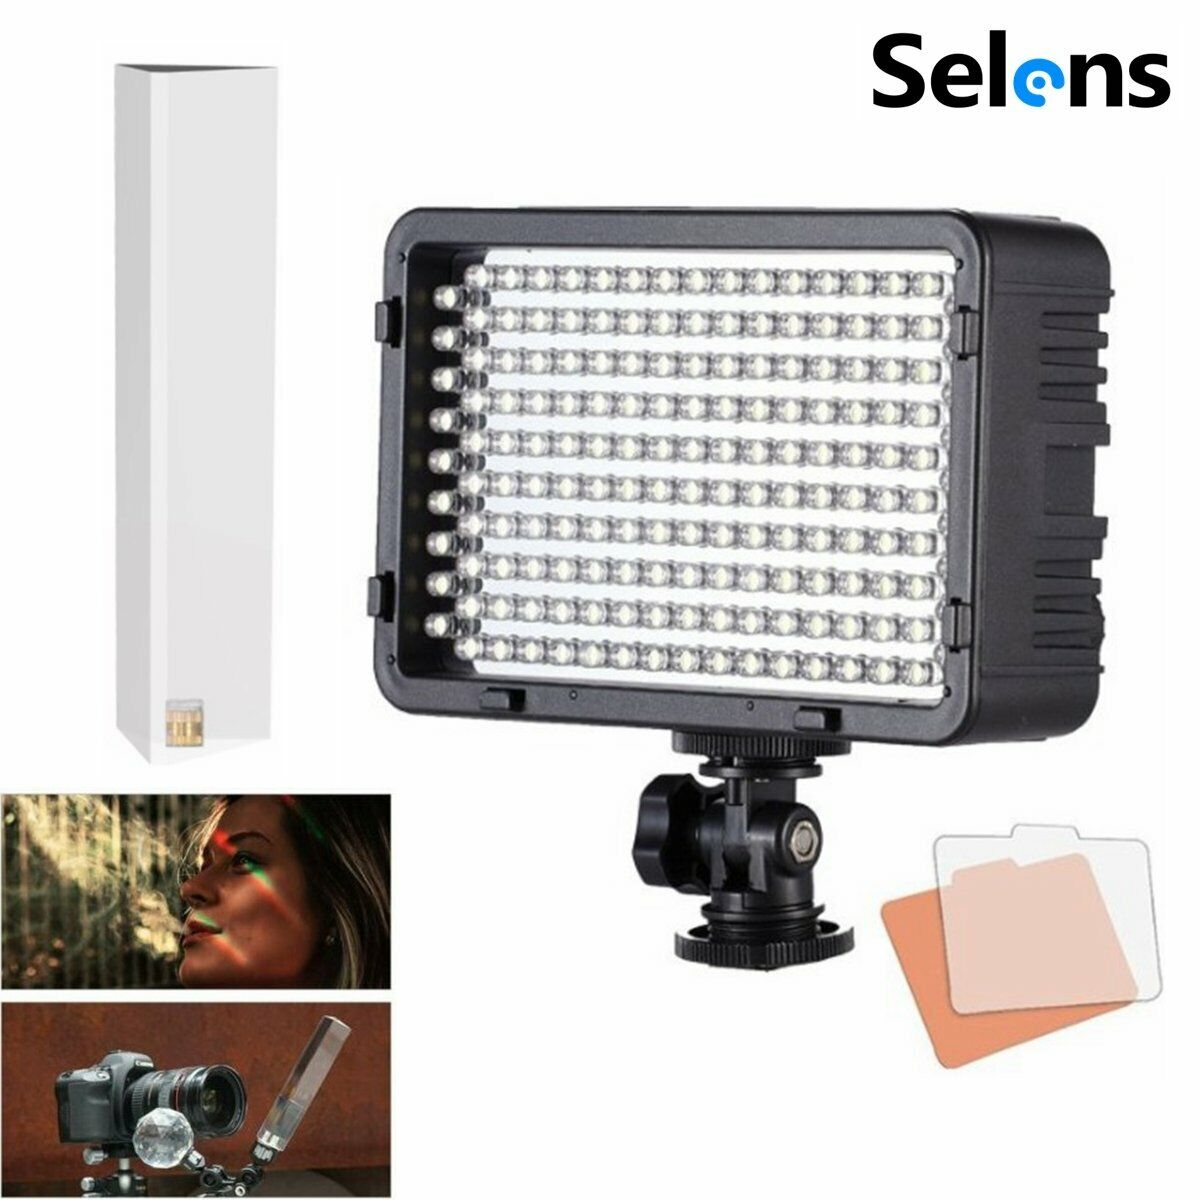 168 LED Continuous Light Lamp + Crystal Mitsubishi Column Ball for Photography